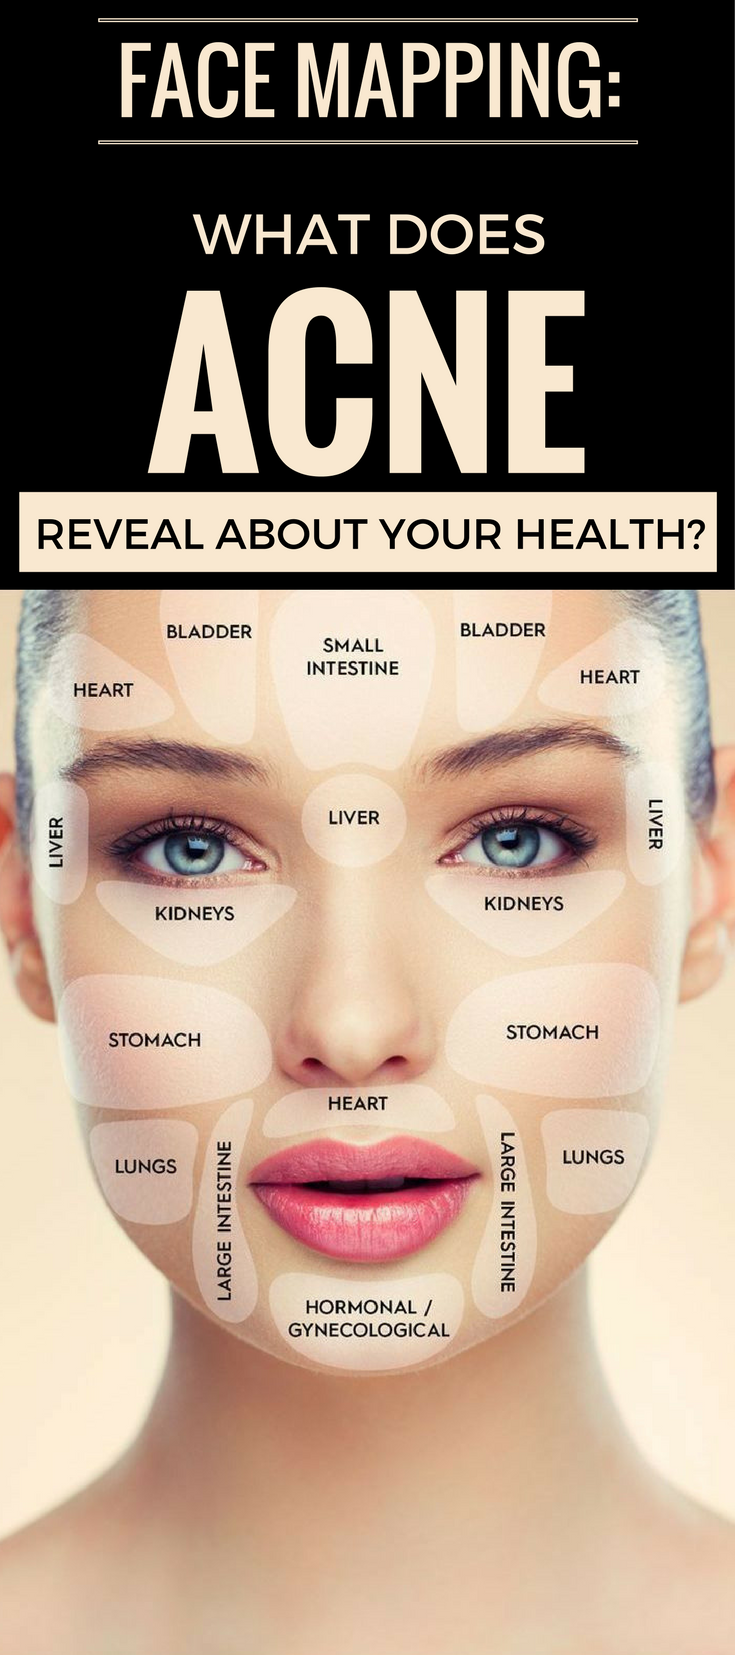 hight resolution of acne diagram face easy wiring diagrams pimples on head face mapping what does acne reveal about